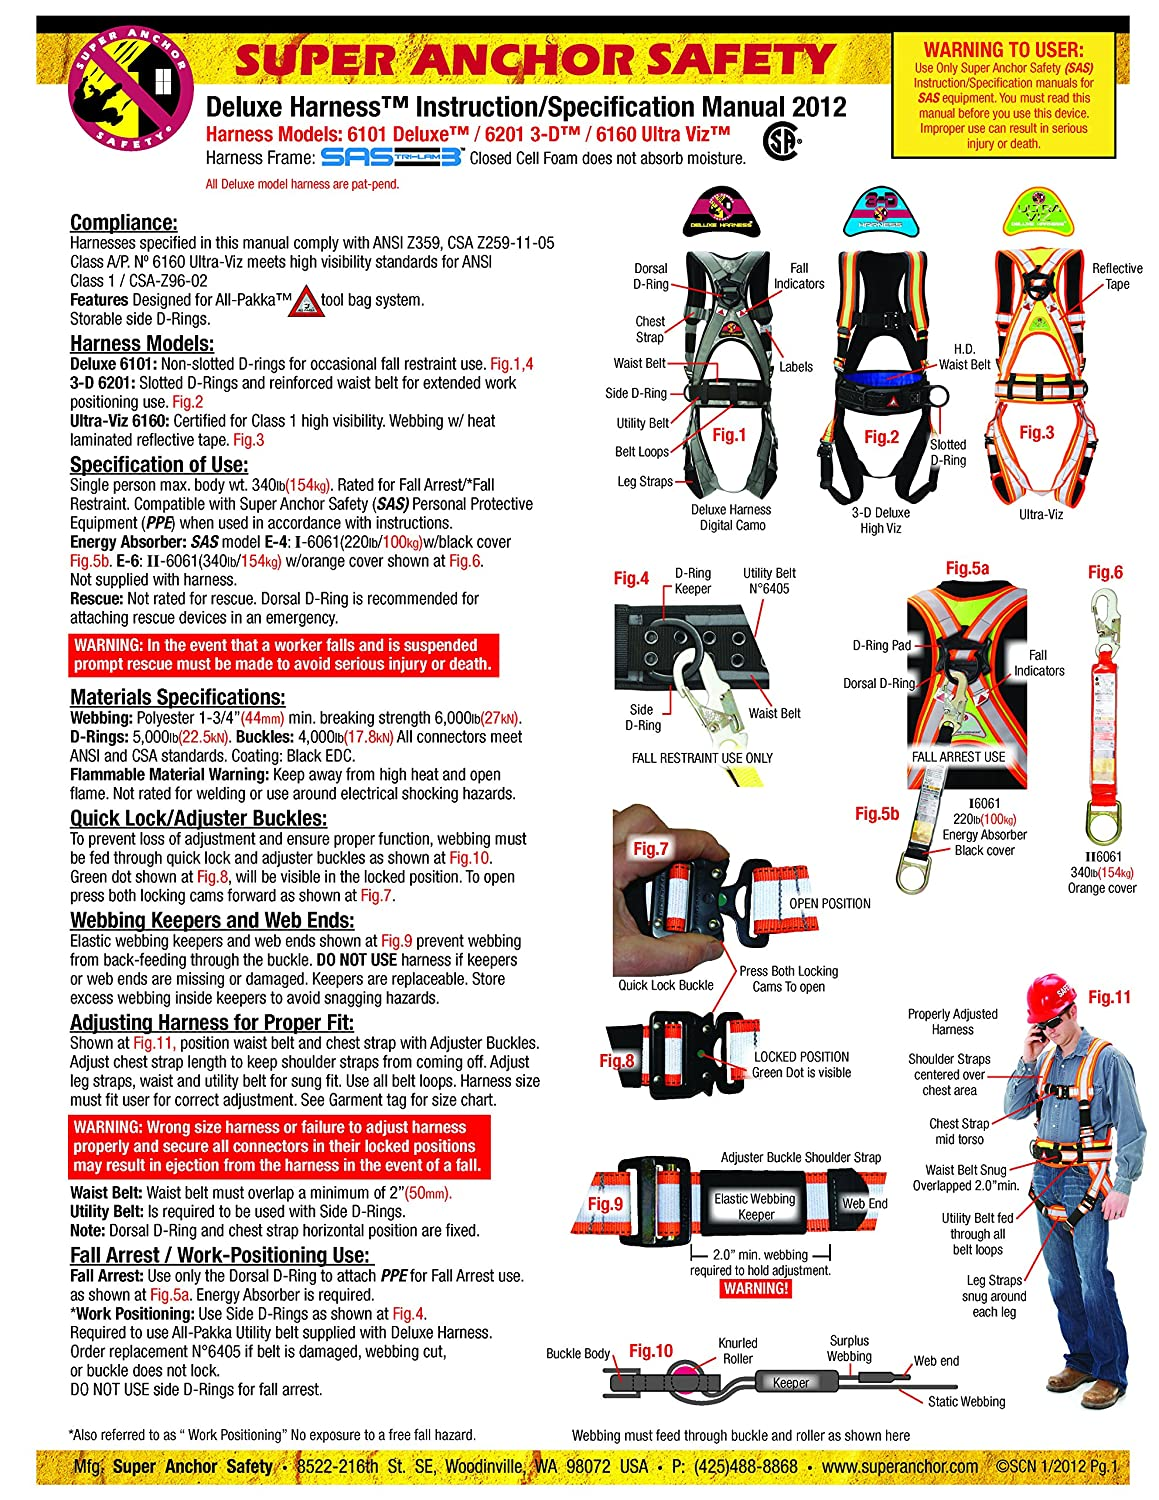 Silver Large Long Super Anchor Safety 6151-SLL Deluxe Full Body Harness plus All-Pakka Tool Bag Combo